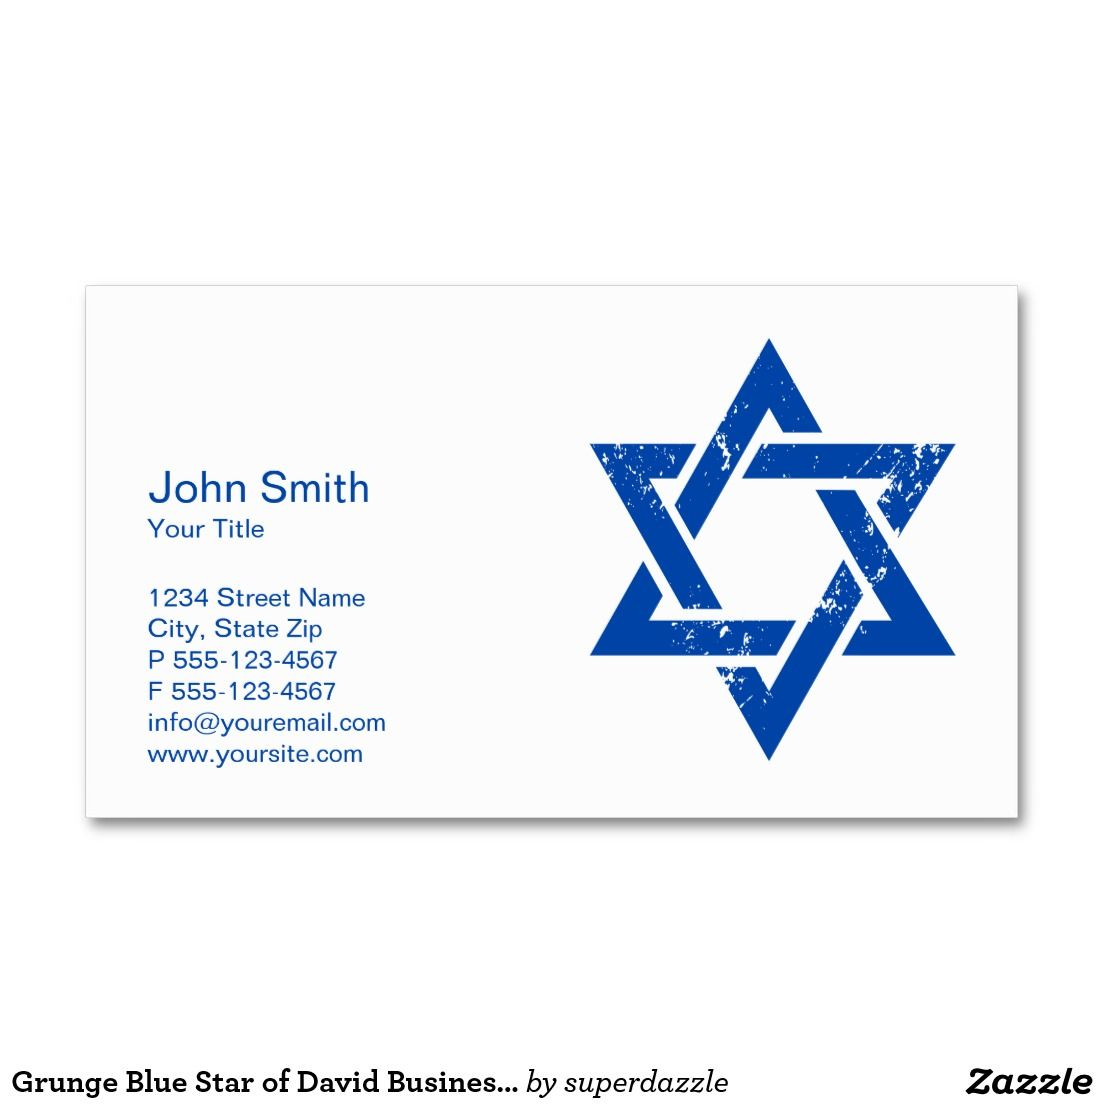 Grunge blue star of david business card template pinterest card this simple and elegant blue star of david business card is fully customized you can change all colors of texts and background to make reheart